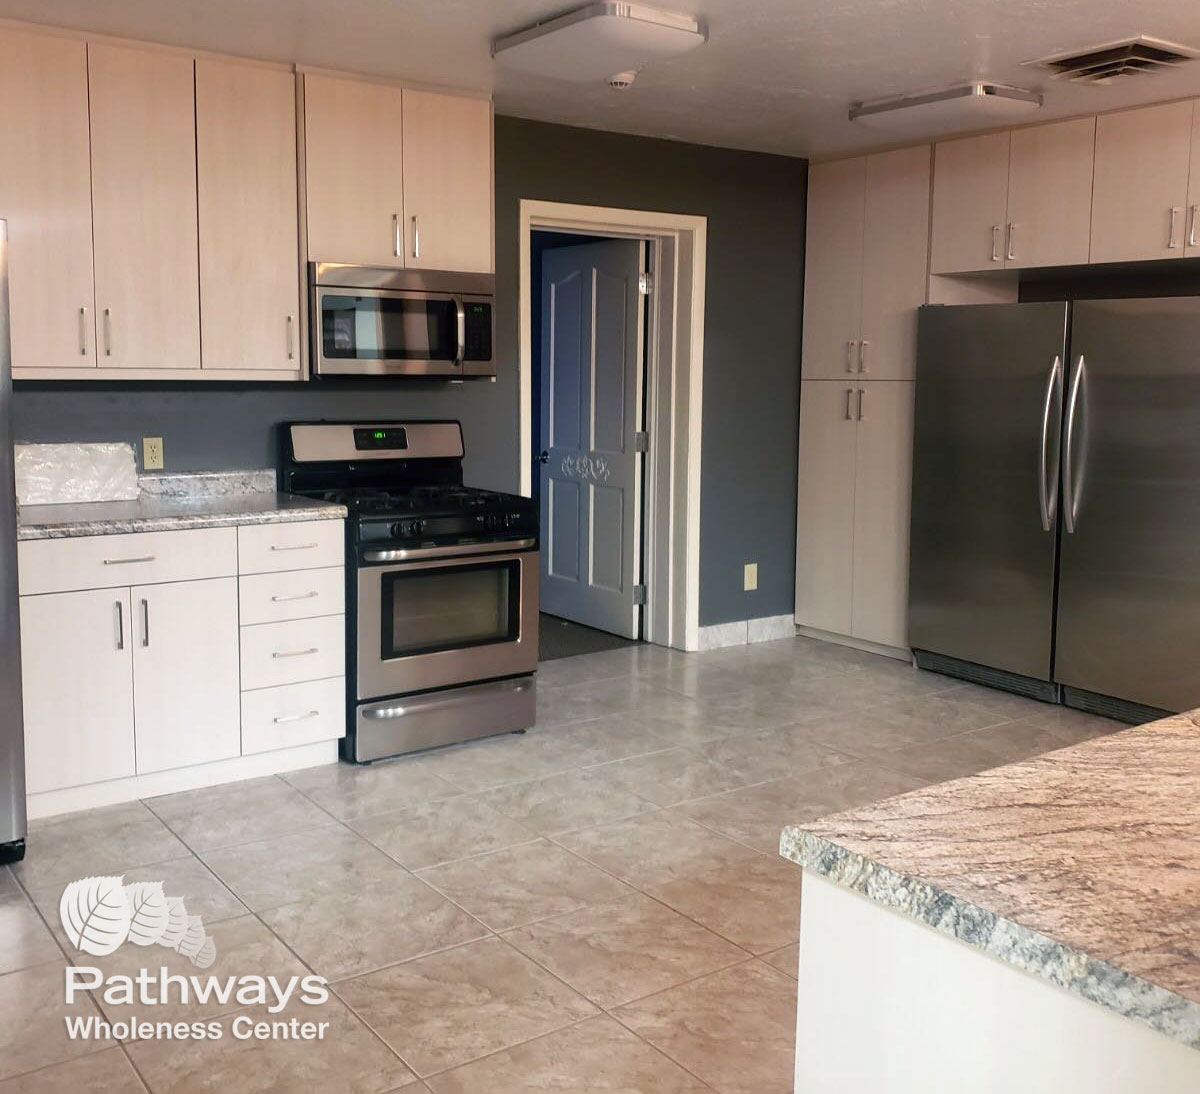 Pathways-Wholeness-Center-Kitchen-Utah